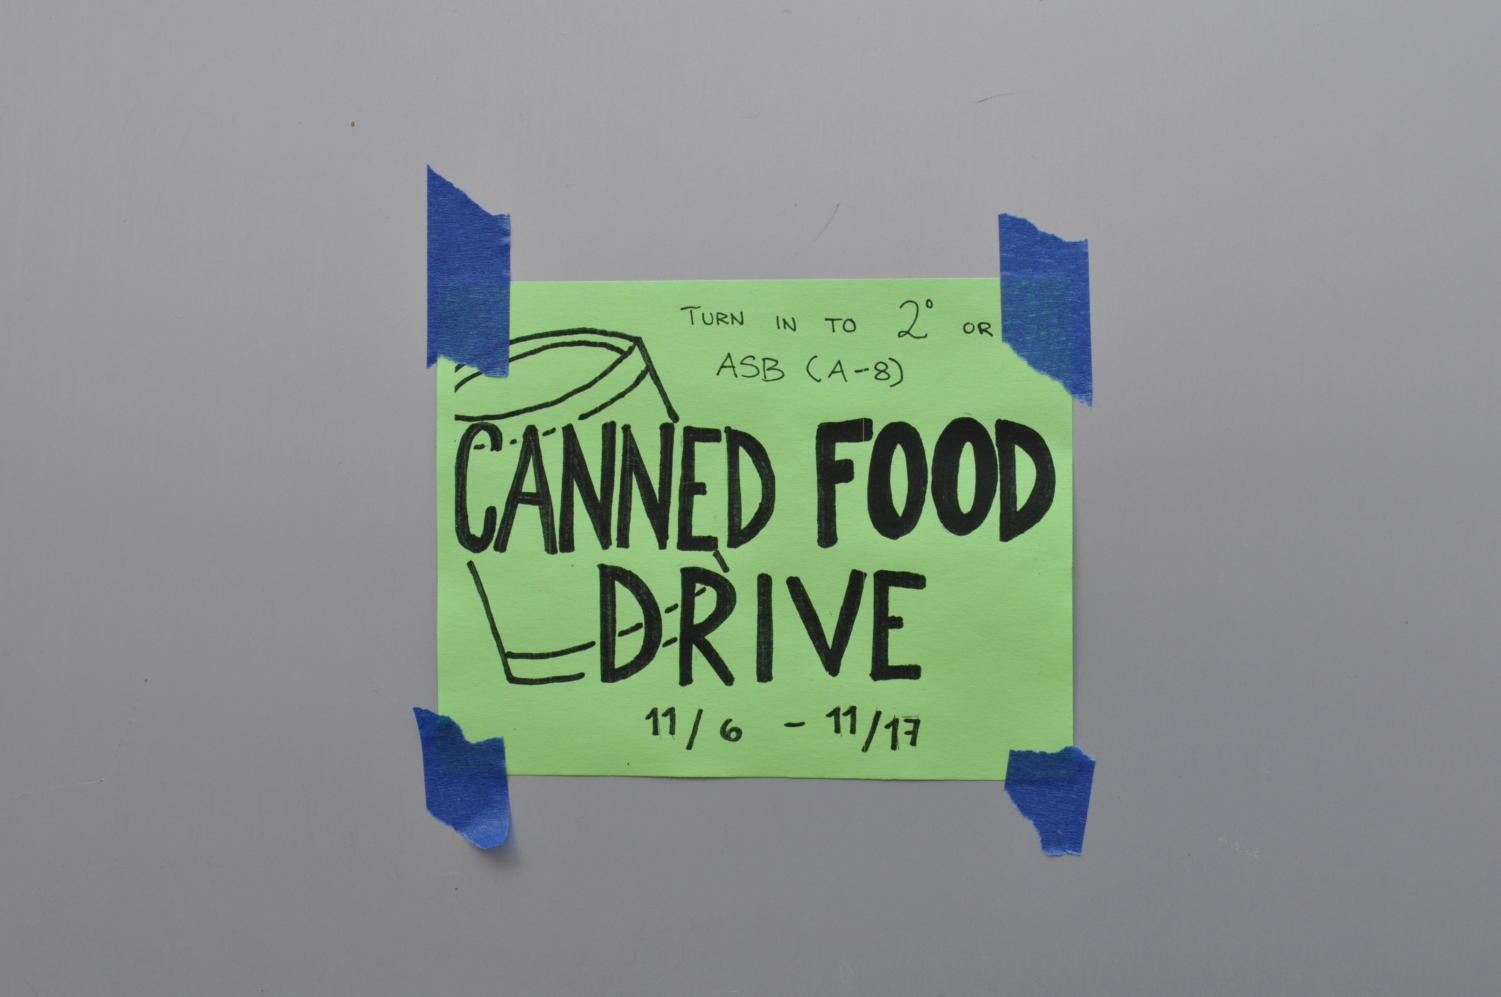 ASB+posts+little+signs+on+students%27+lockers+to+remind+them+to+donate.